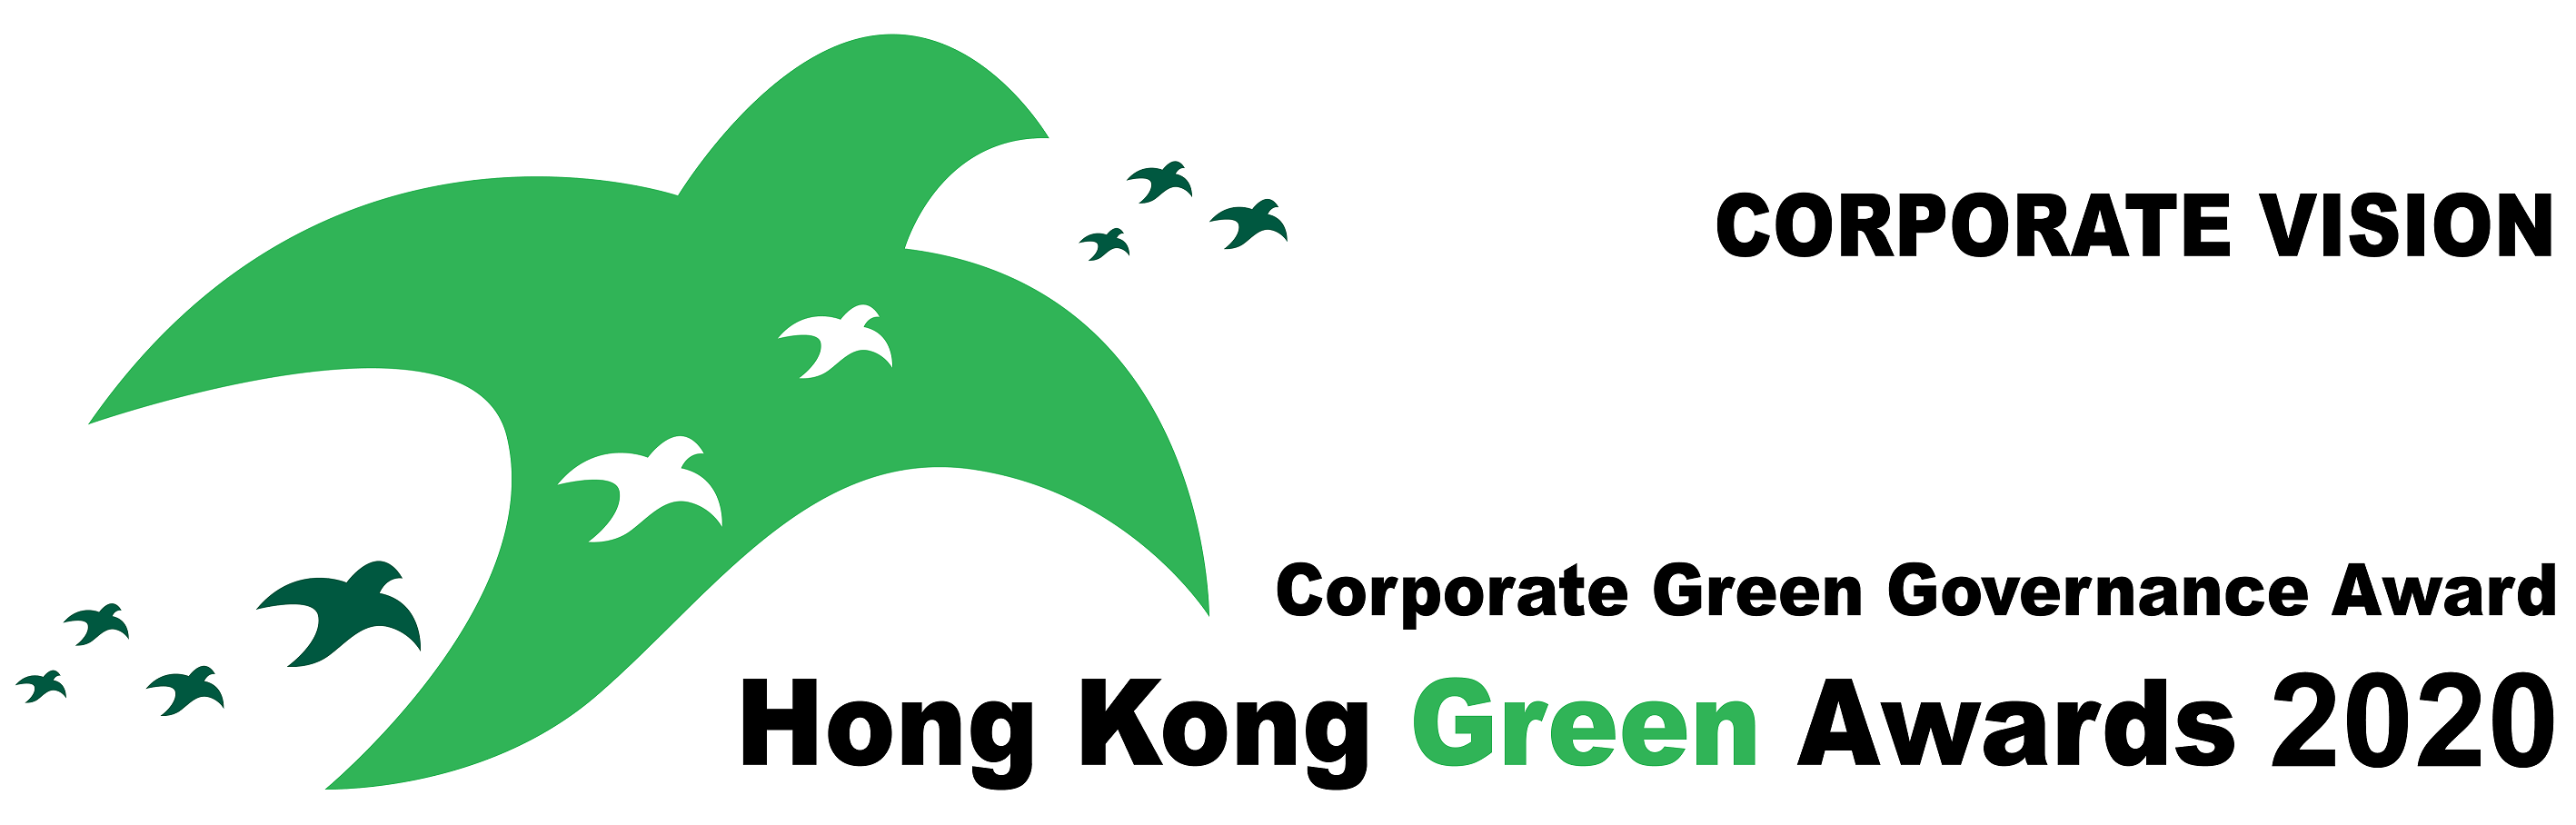 Logo for HKGA 2020 – Corporate Green Governance Award (CGGA)